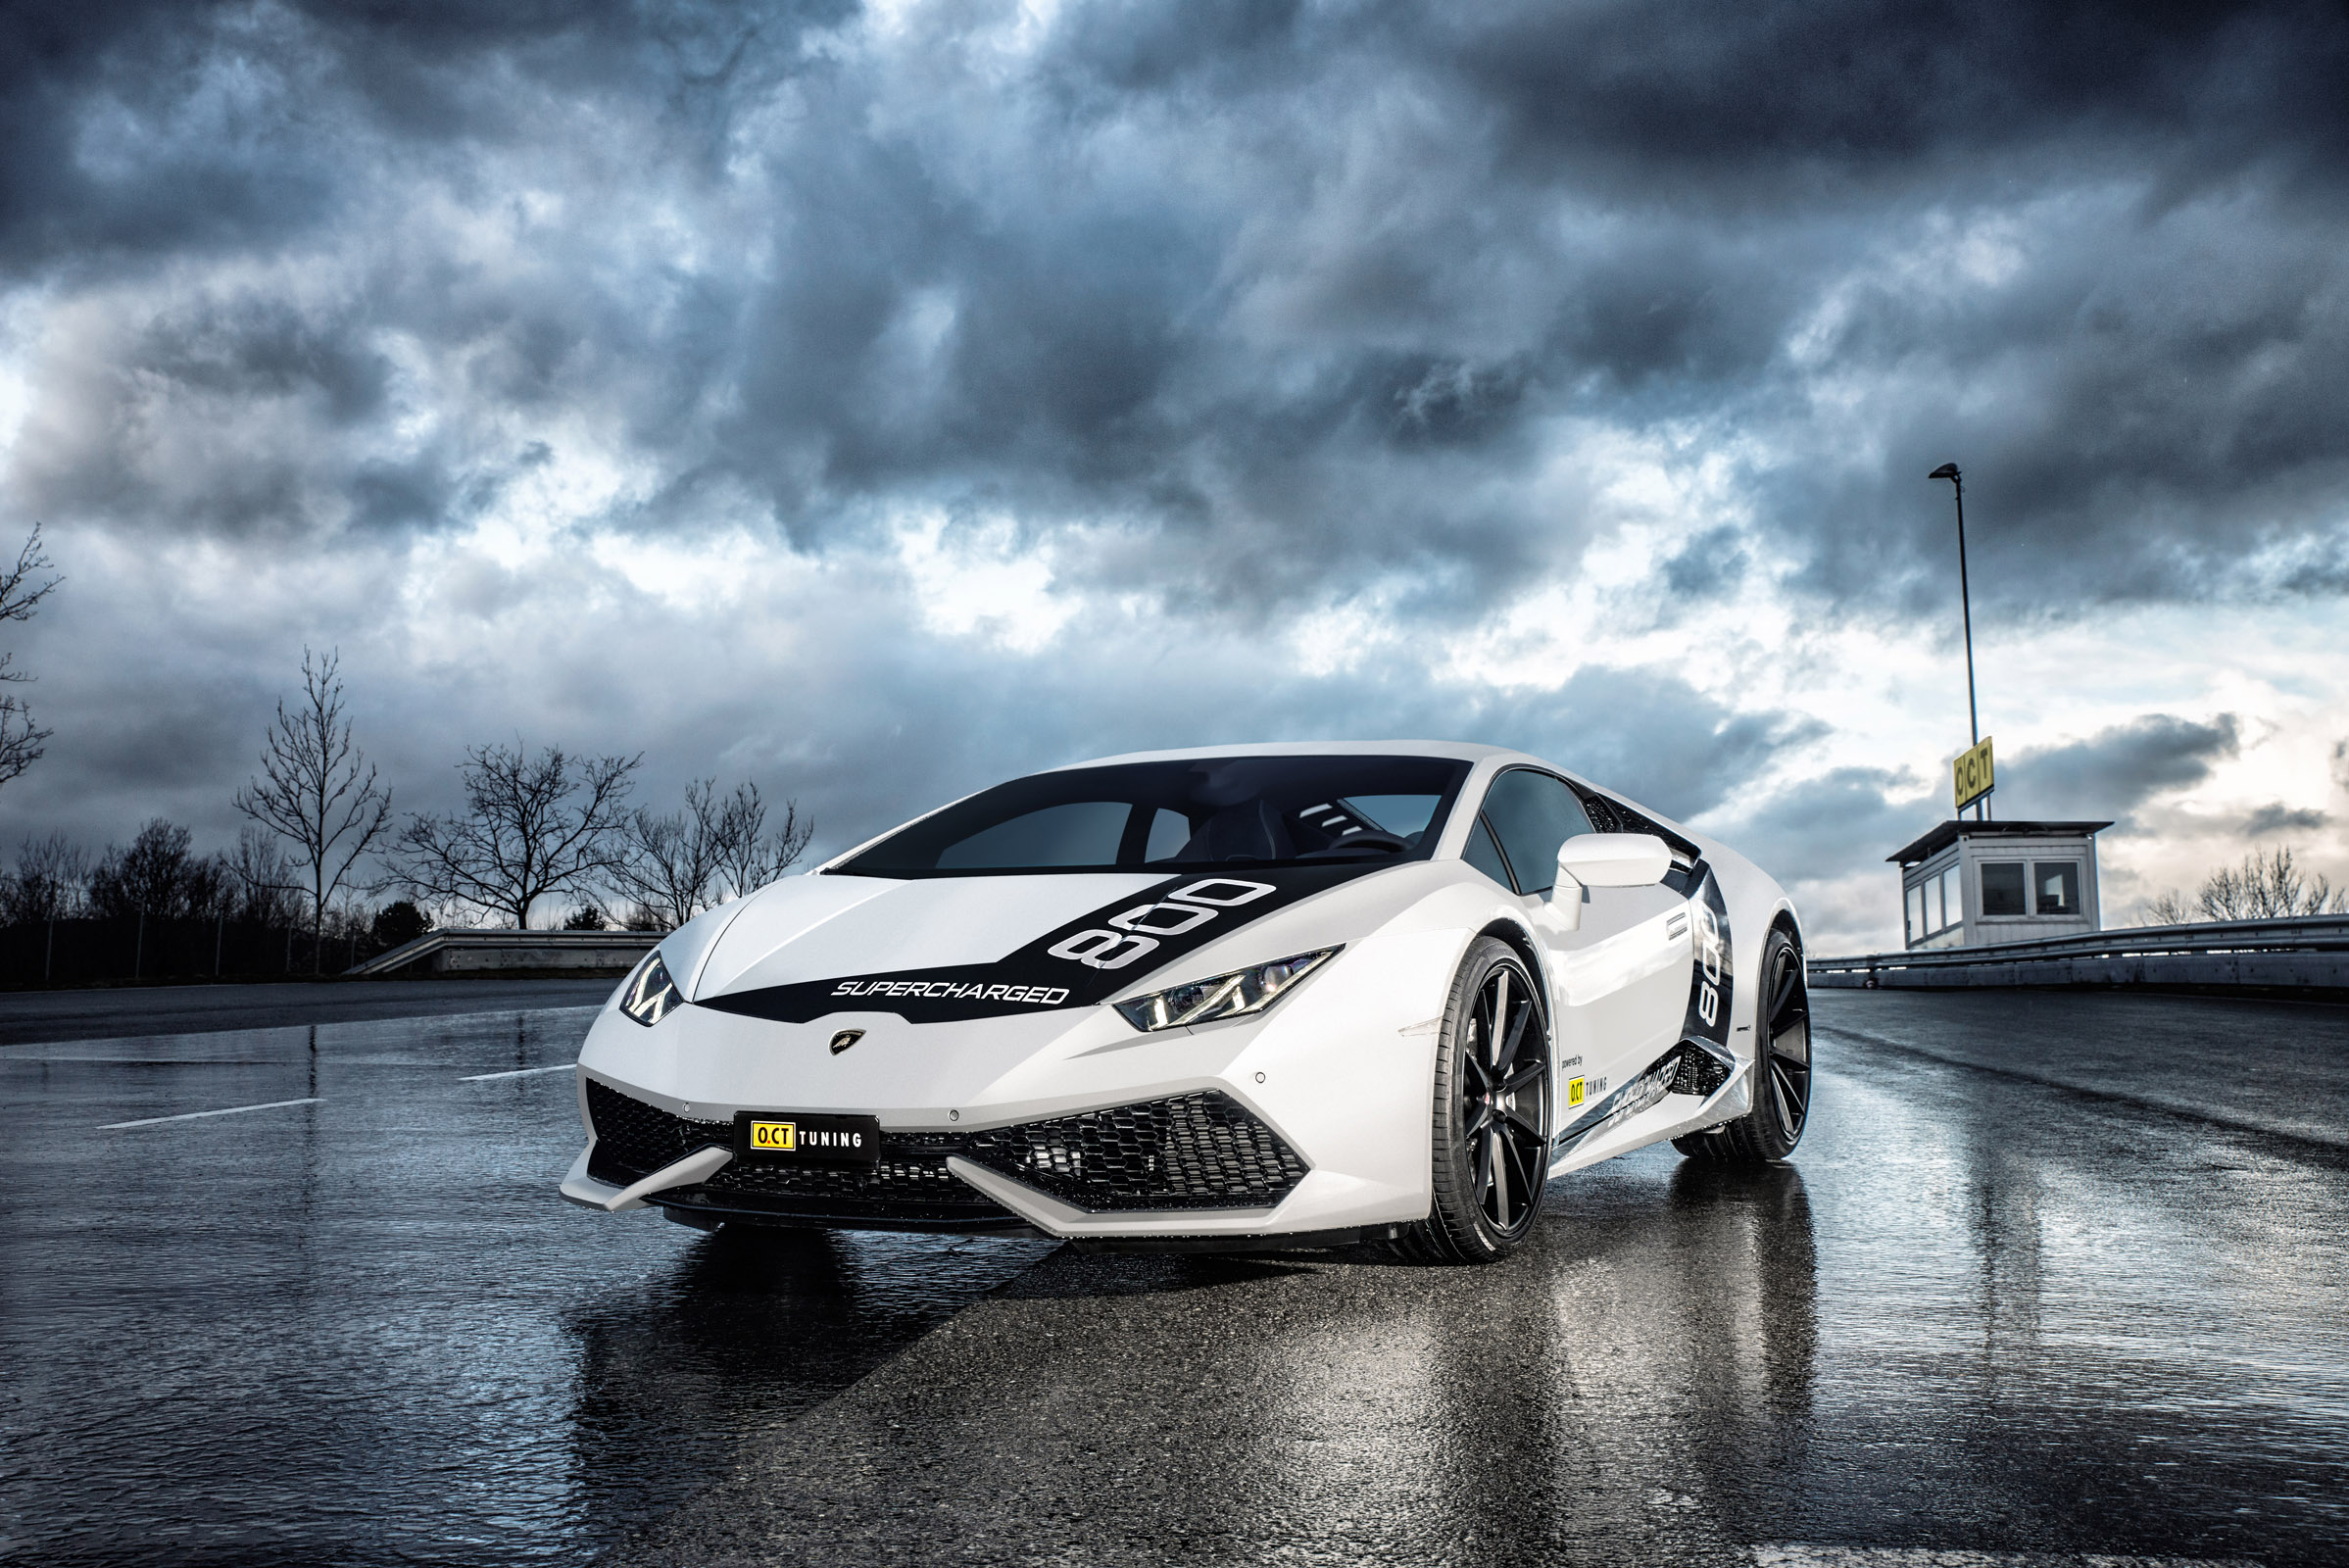 OCT Lamborghini Huracan photo #1